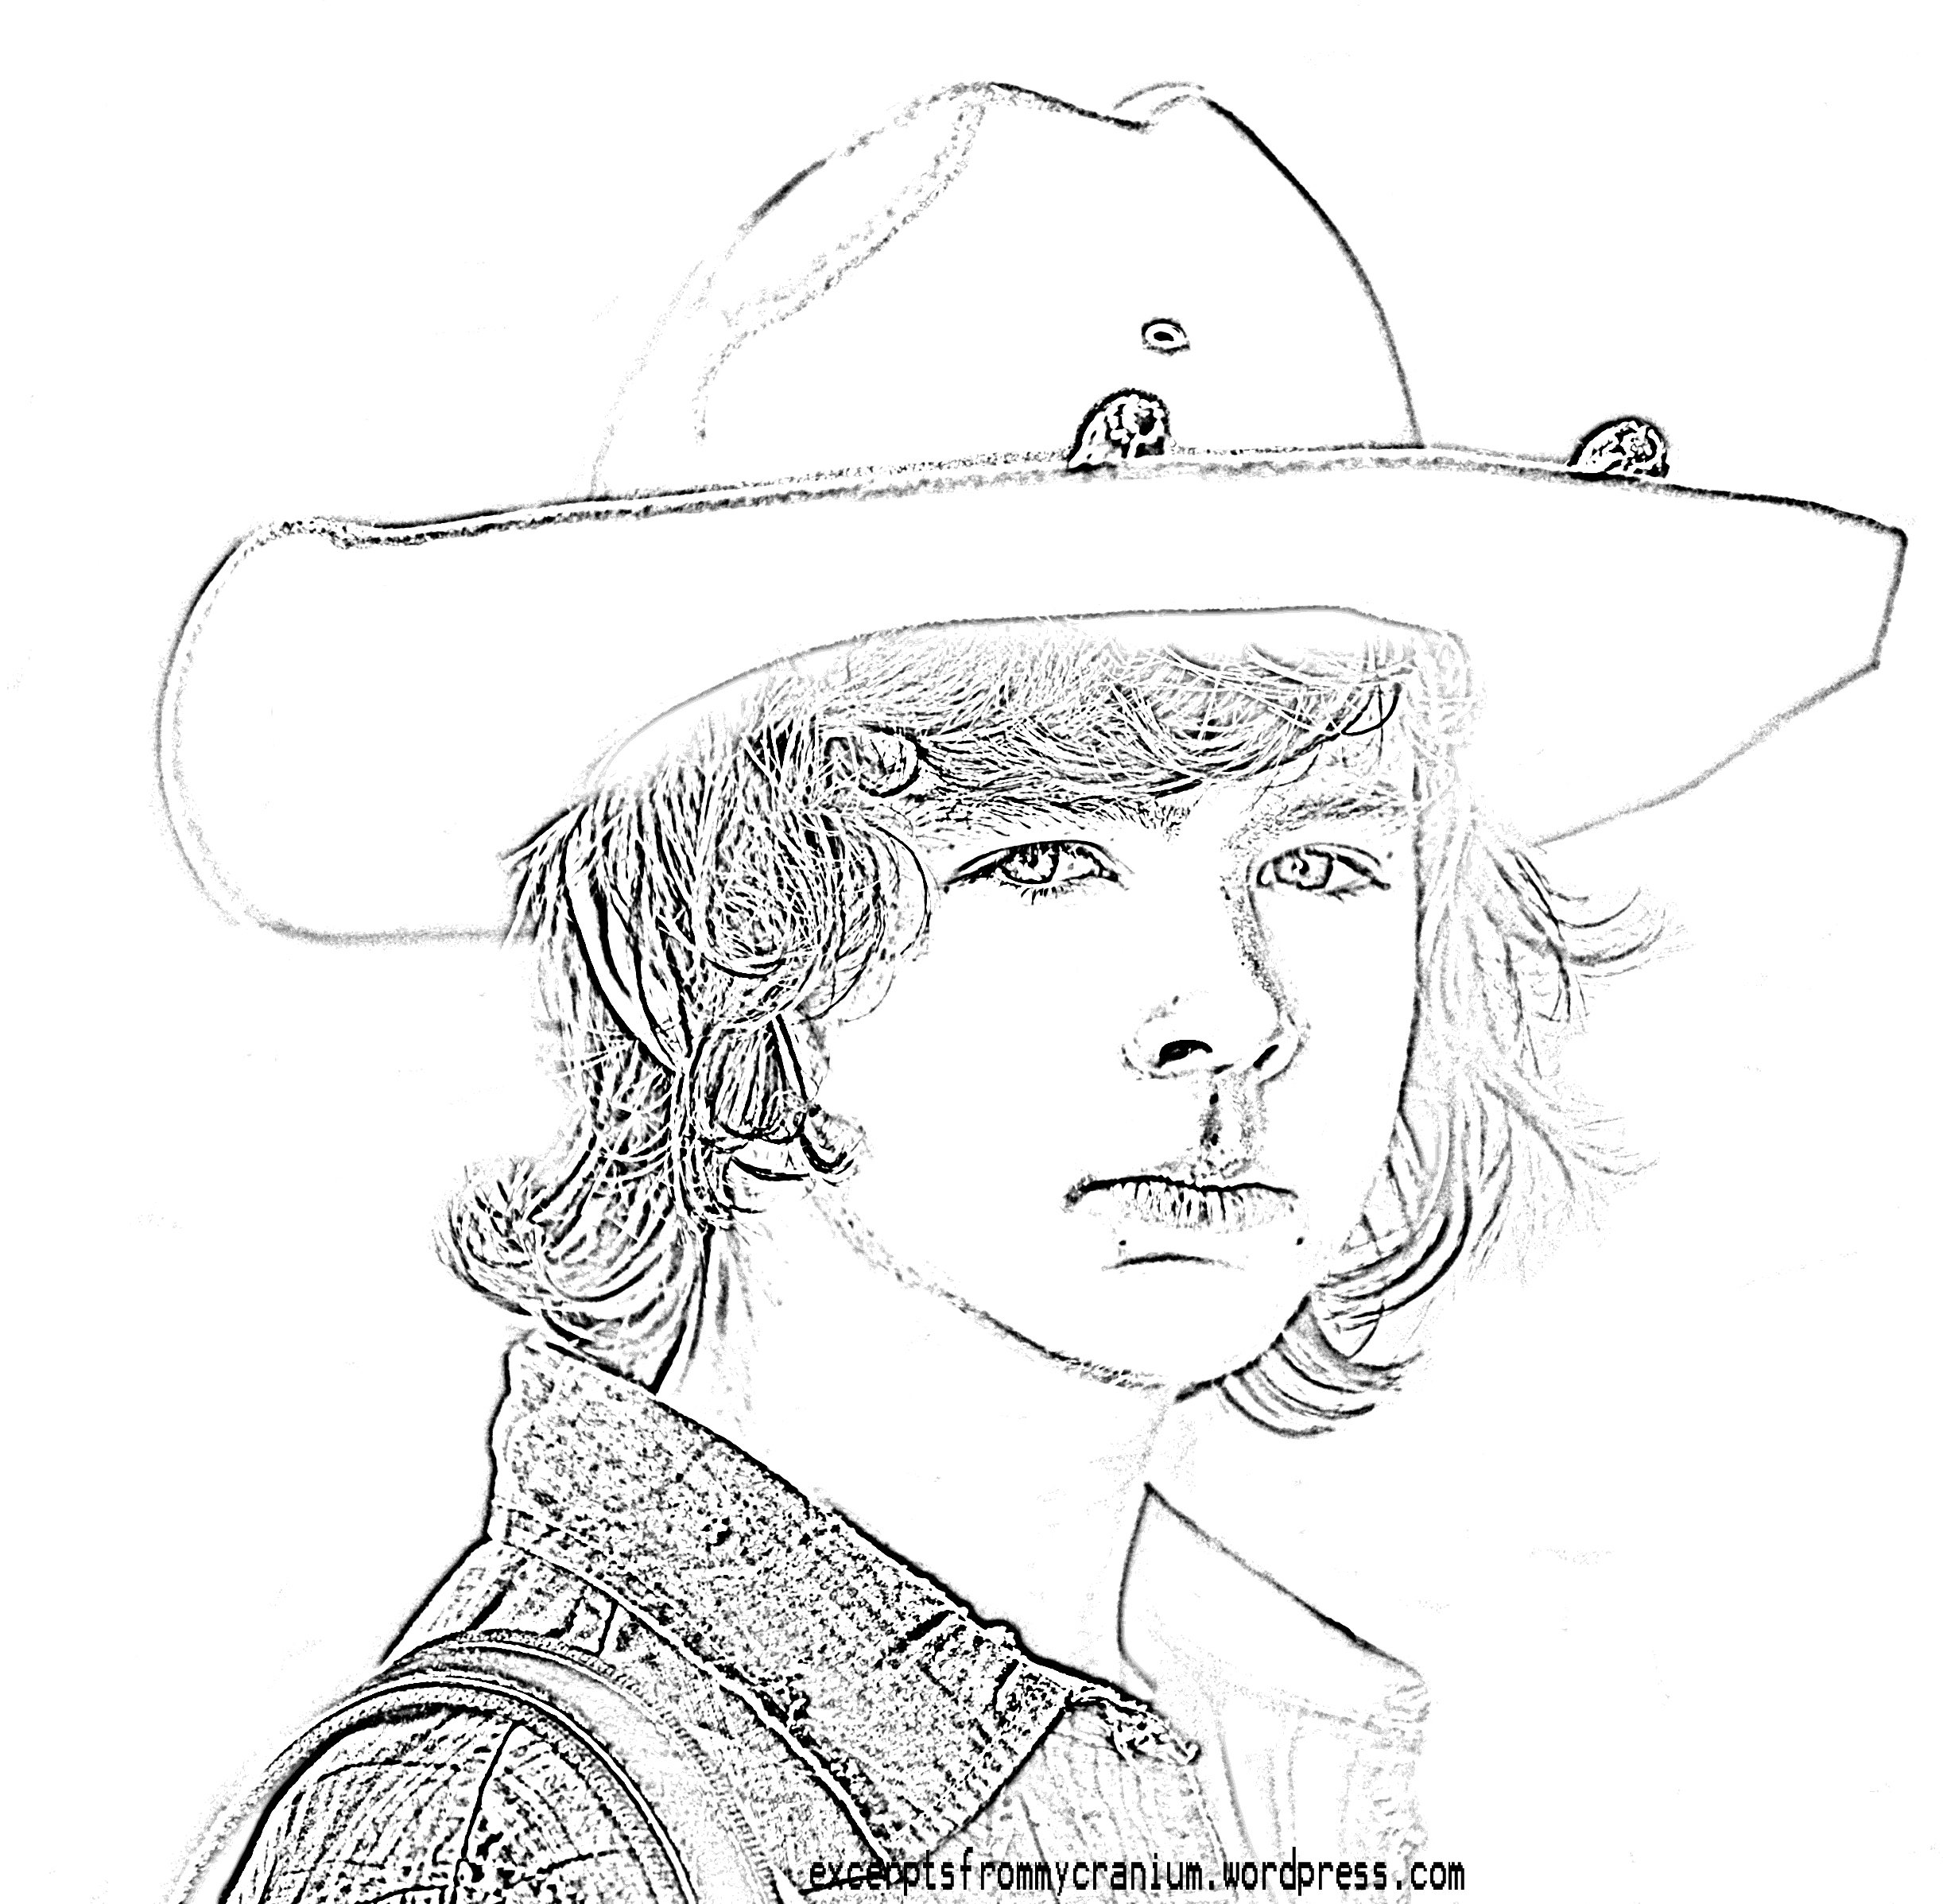 walking dead coloring pages - the walking dead logo coloring sketch templates